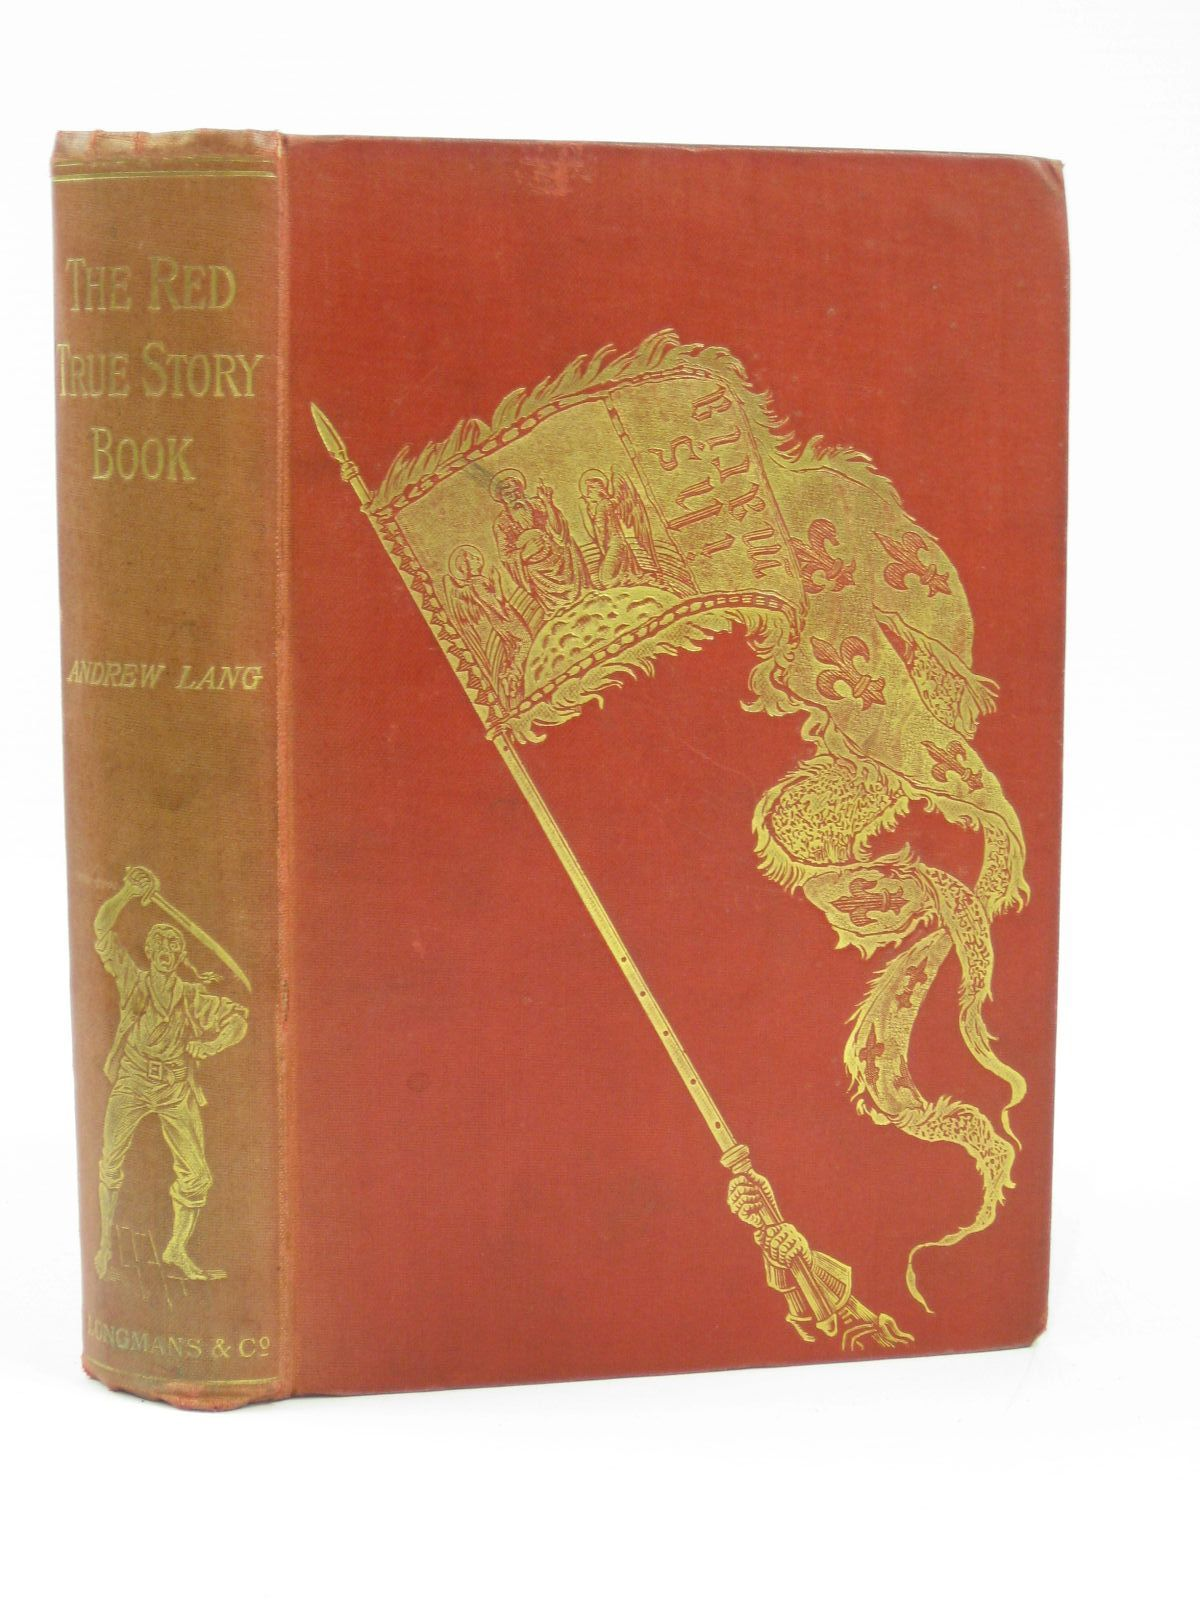 Photo of THE RED TRUE STORY BOOK written by Lang, Andrew illustrated by Ford, H.J. published by Longmans, Green & Co. (STOCK CODE: 1506754)  for sale by Stella & Rose's Books